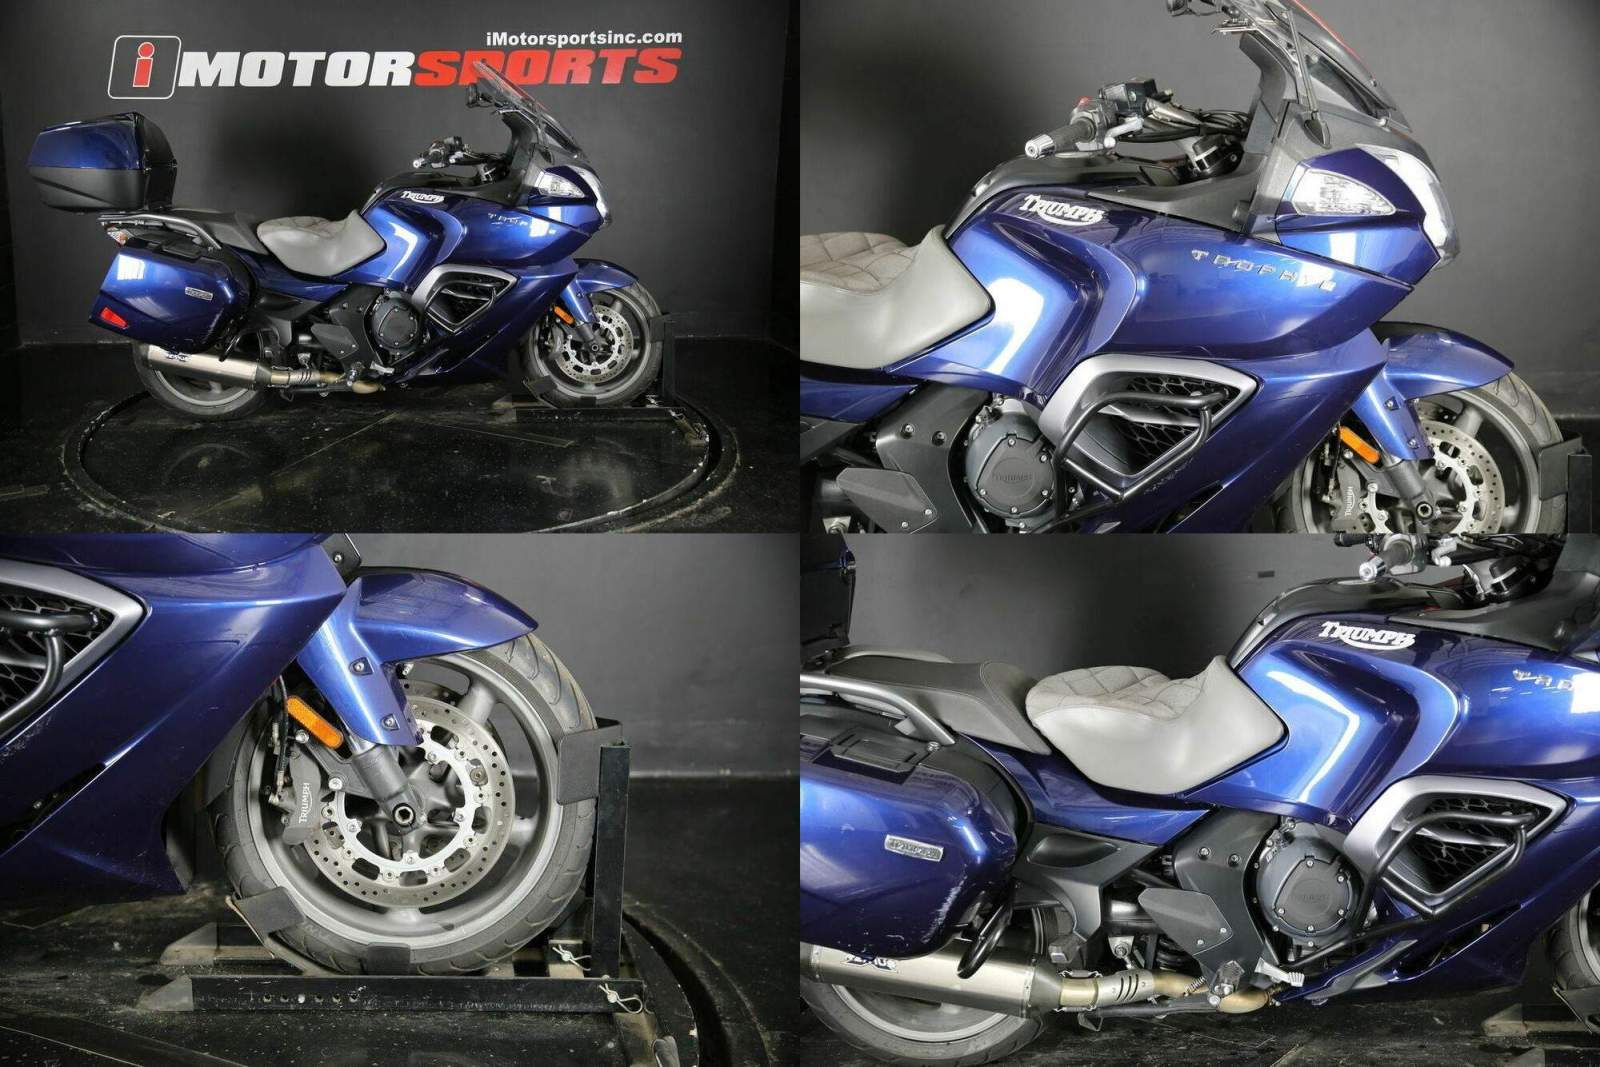 2013 Triumph Trophy Blue used for sale